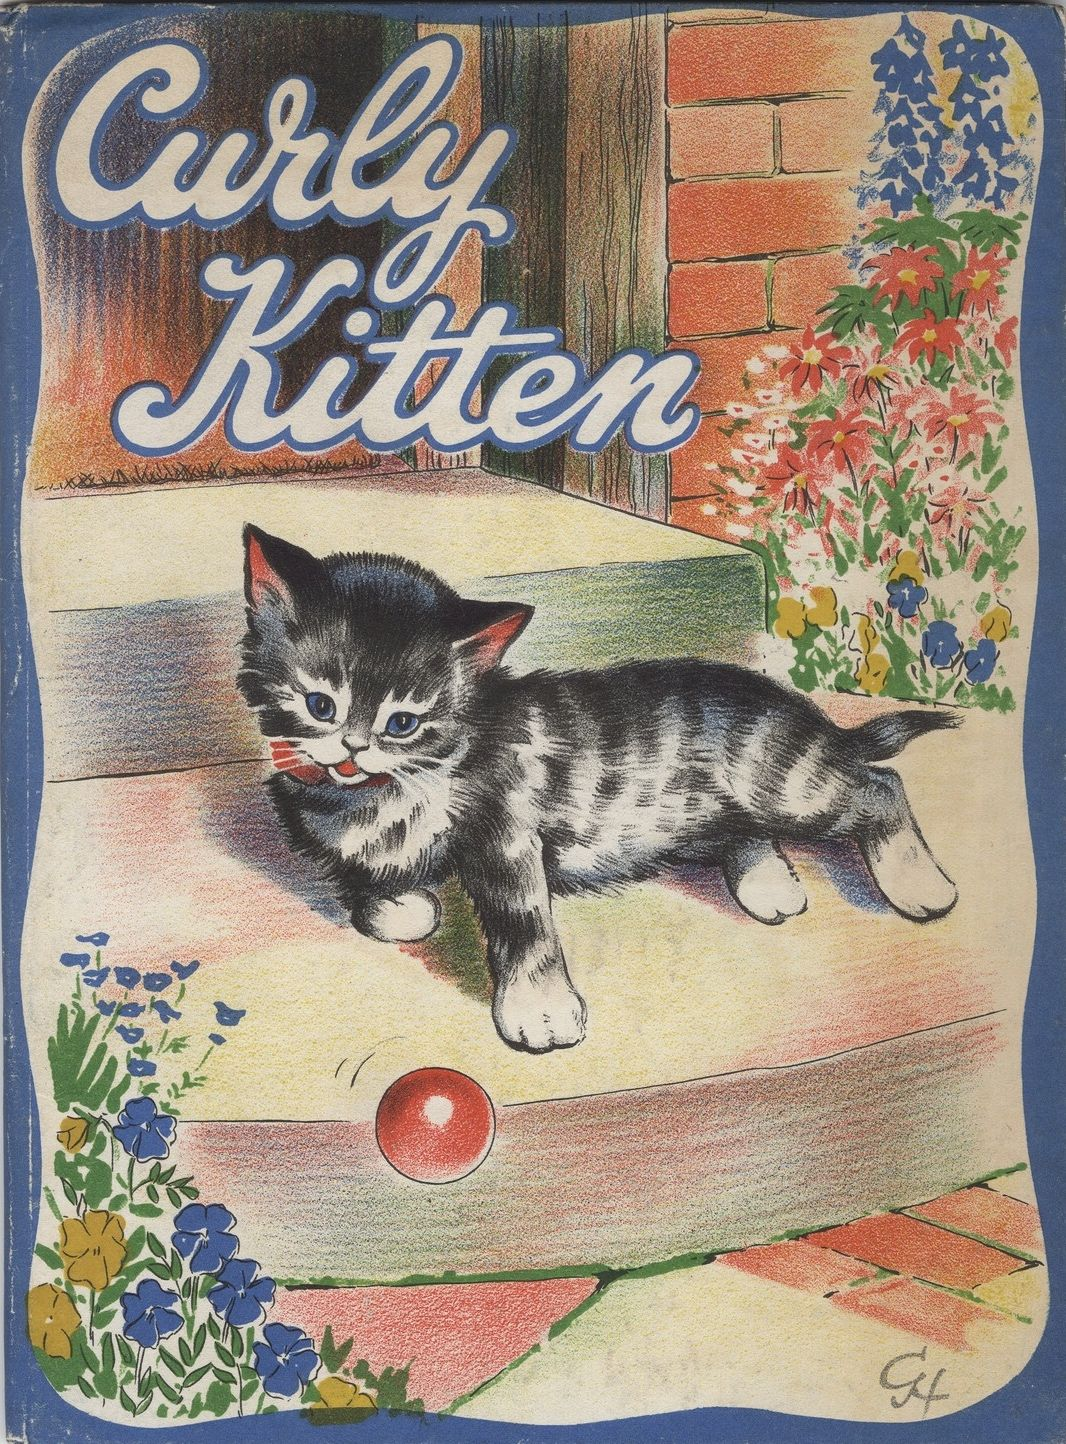 Curly Kitten Verses By D V O Brien Illustrations By Geoffrey Higham London Evans Bothers 1945 Front Cover All About Cats Cats Vintage Illustration